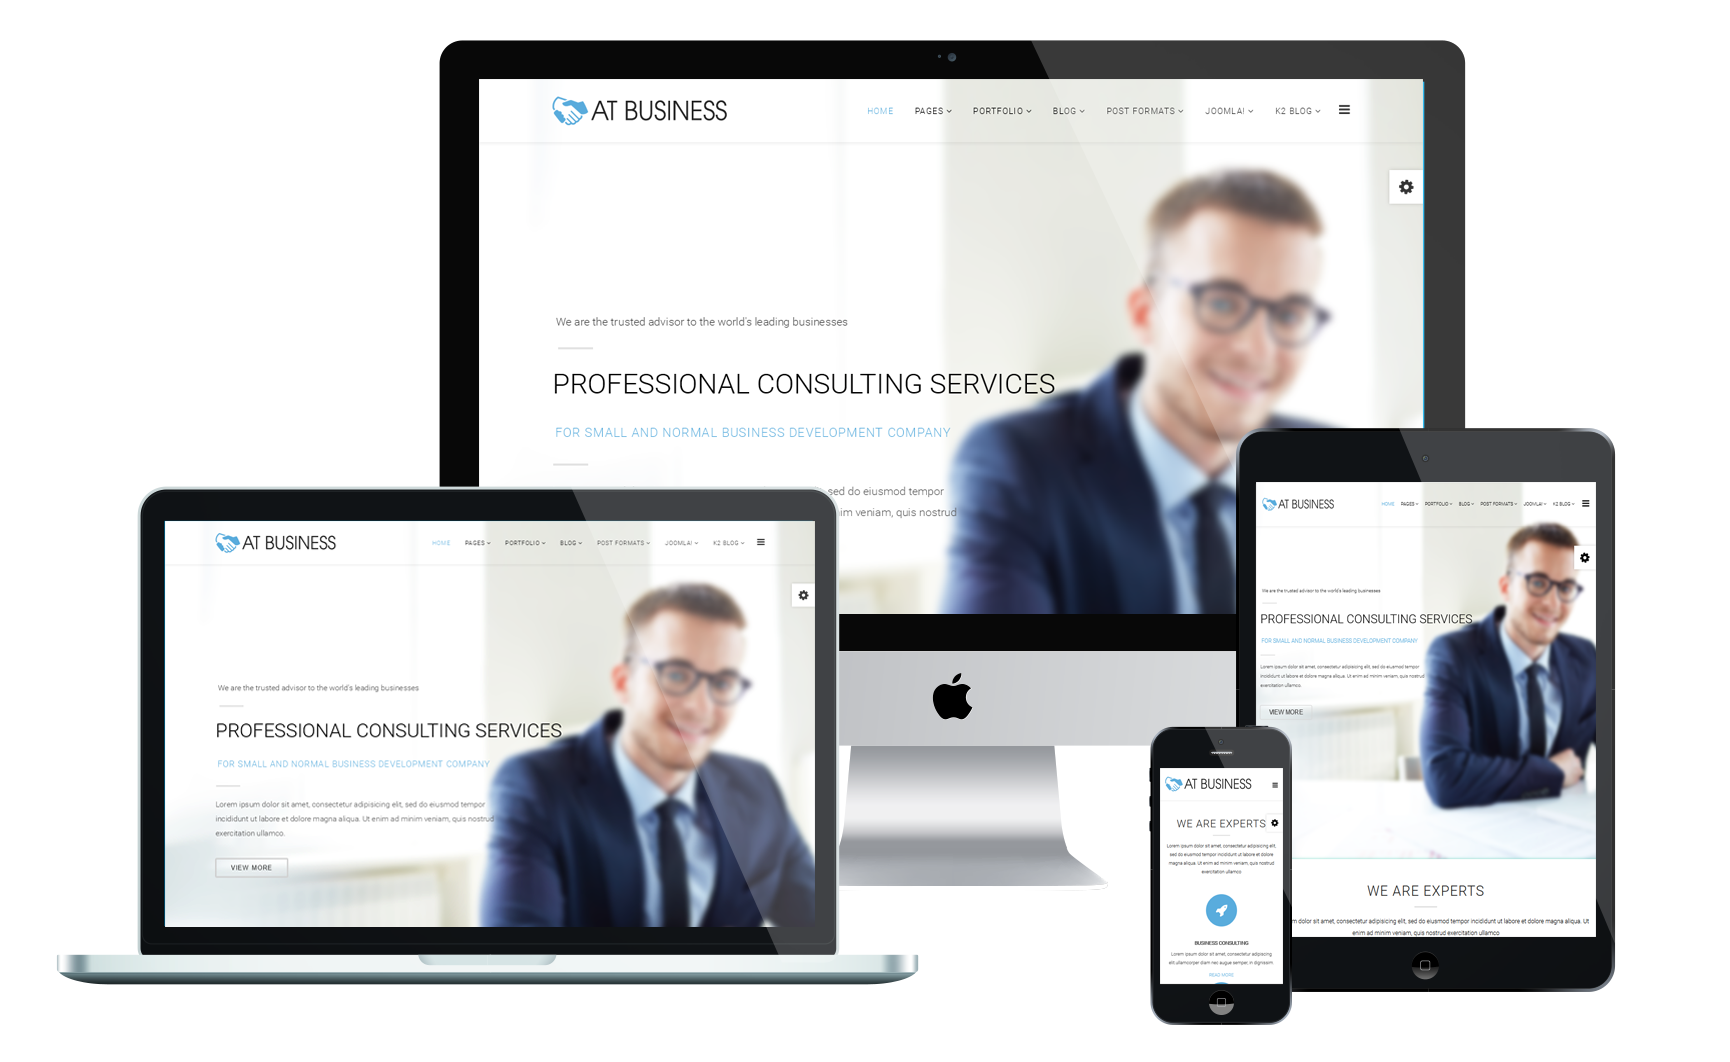 Top best free business corporation joomla 3 templates 2018 at business best joomla business templates fbccfo Images